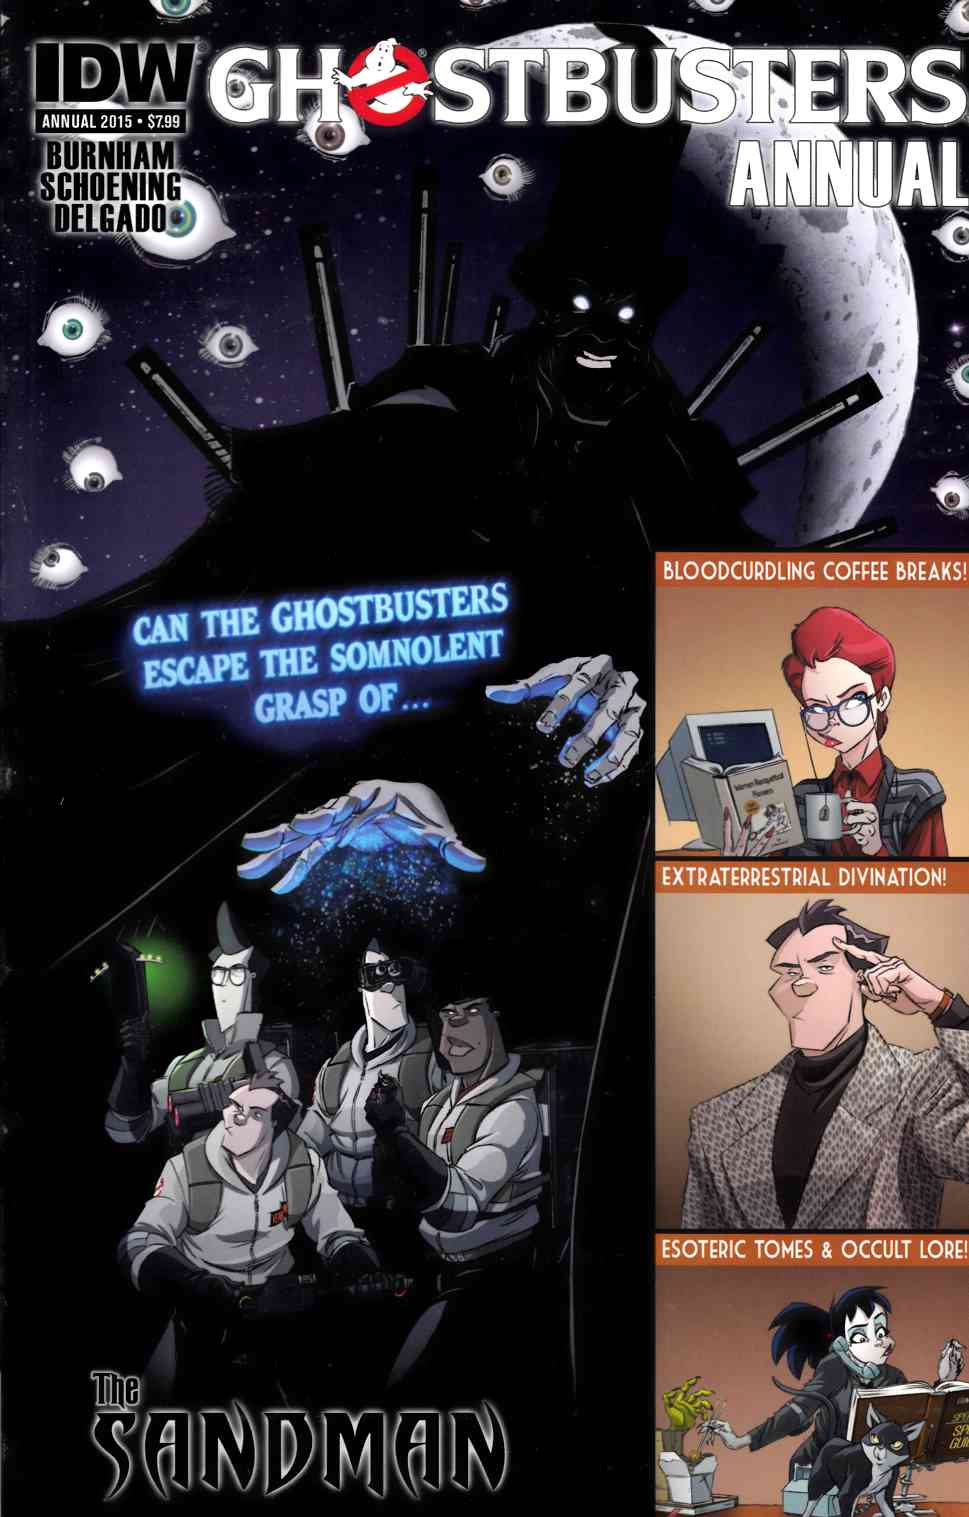 Ghostbusters Annual 2015 [IDW Comic] THUMBNAIL